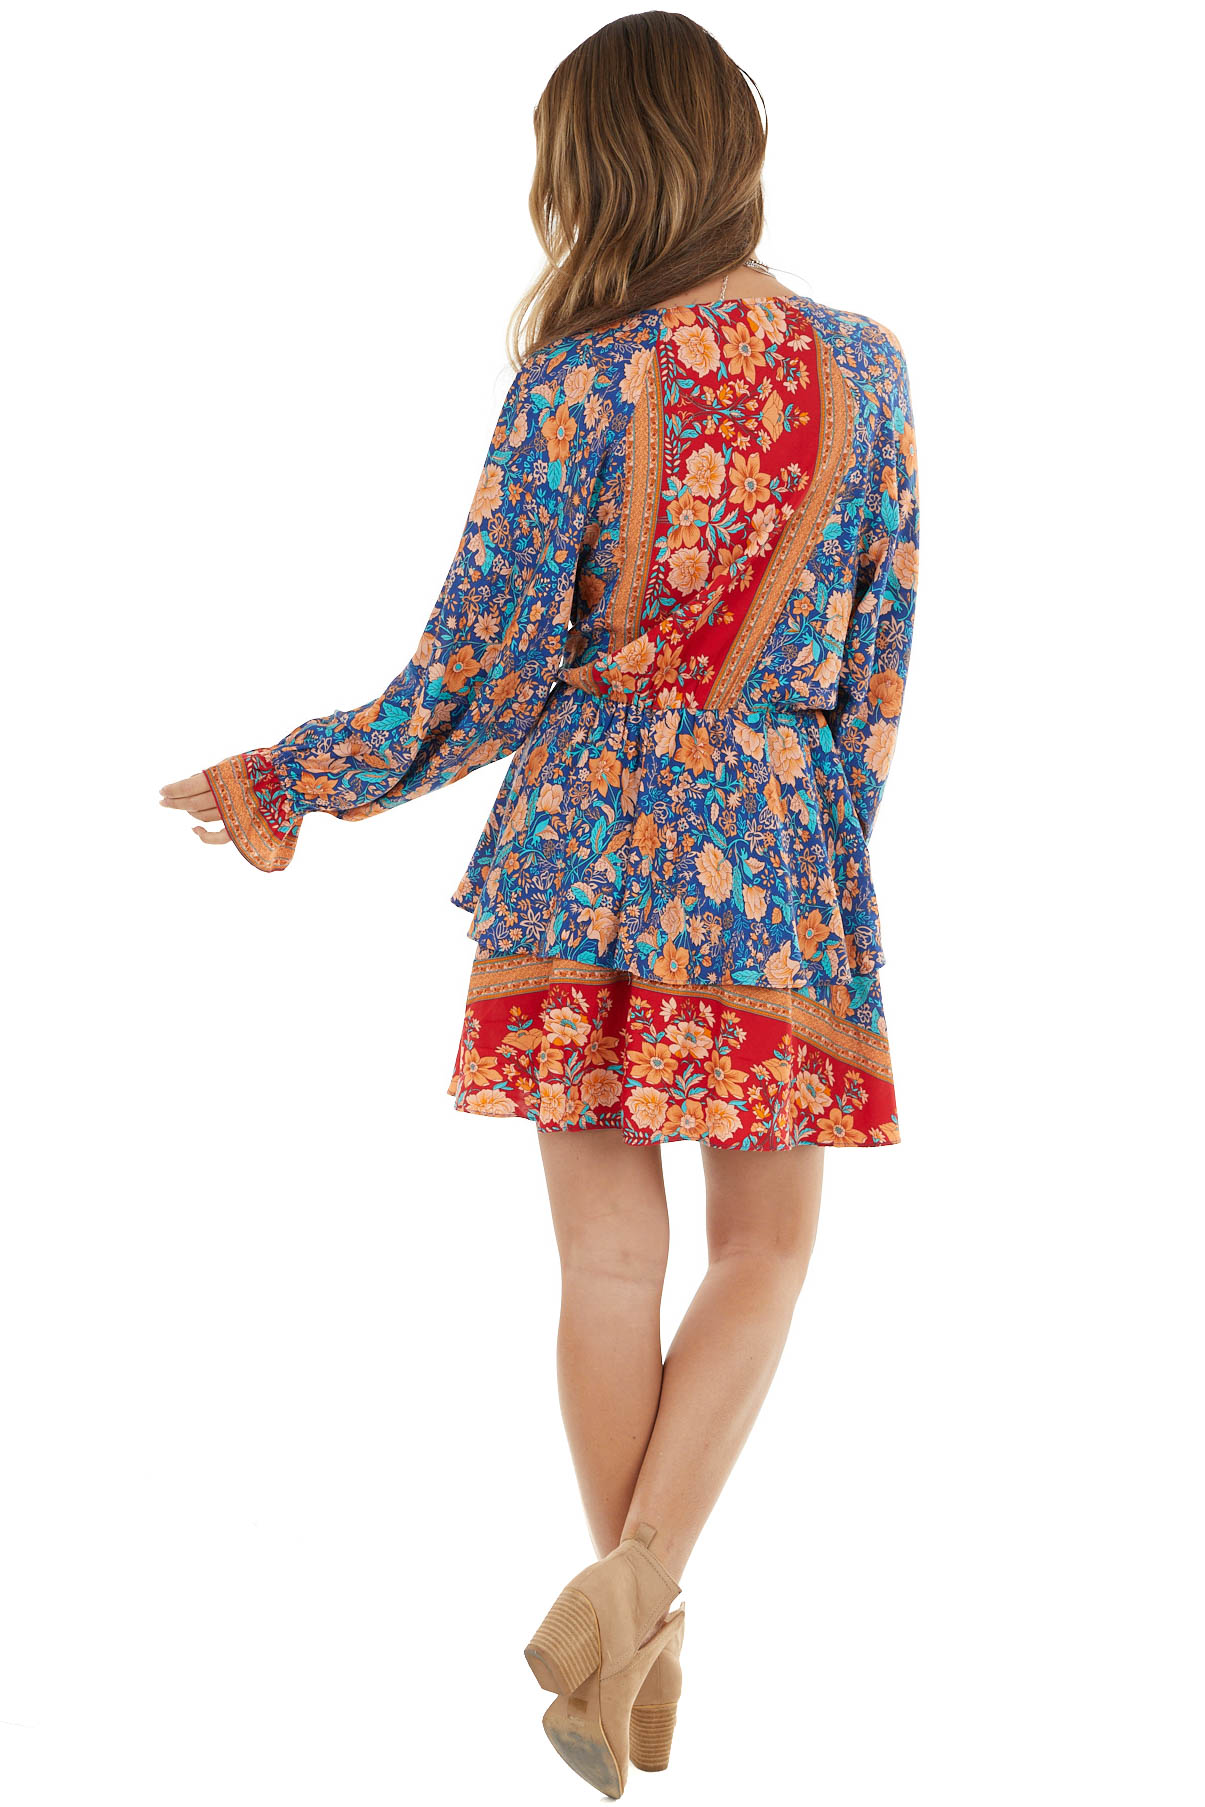 Royal Blue and Cherry Floral Print Surplice Ruffle Dress